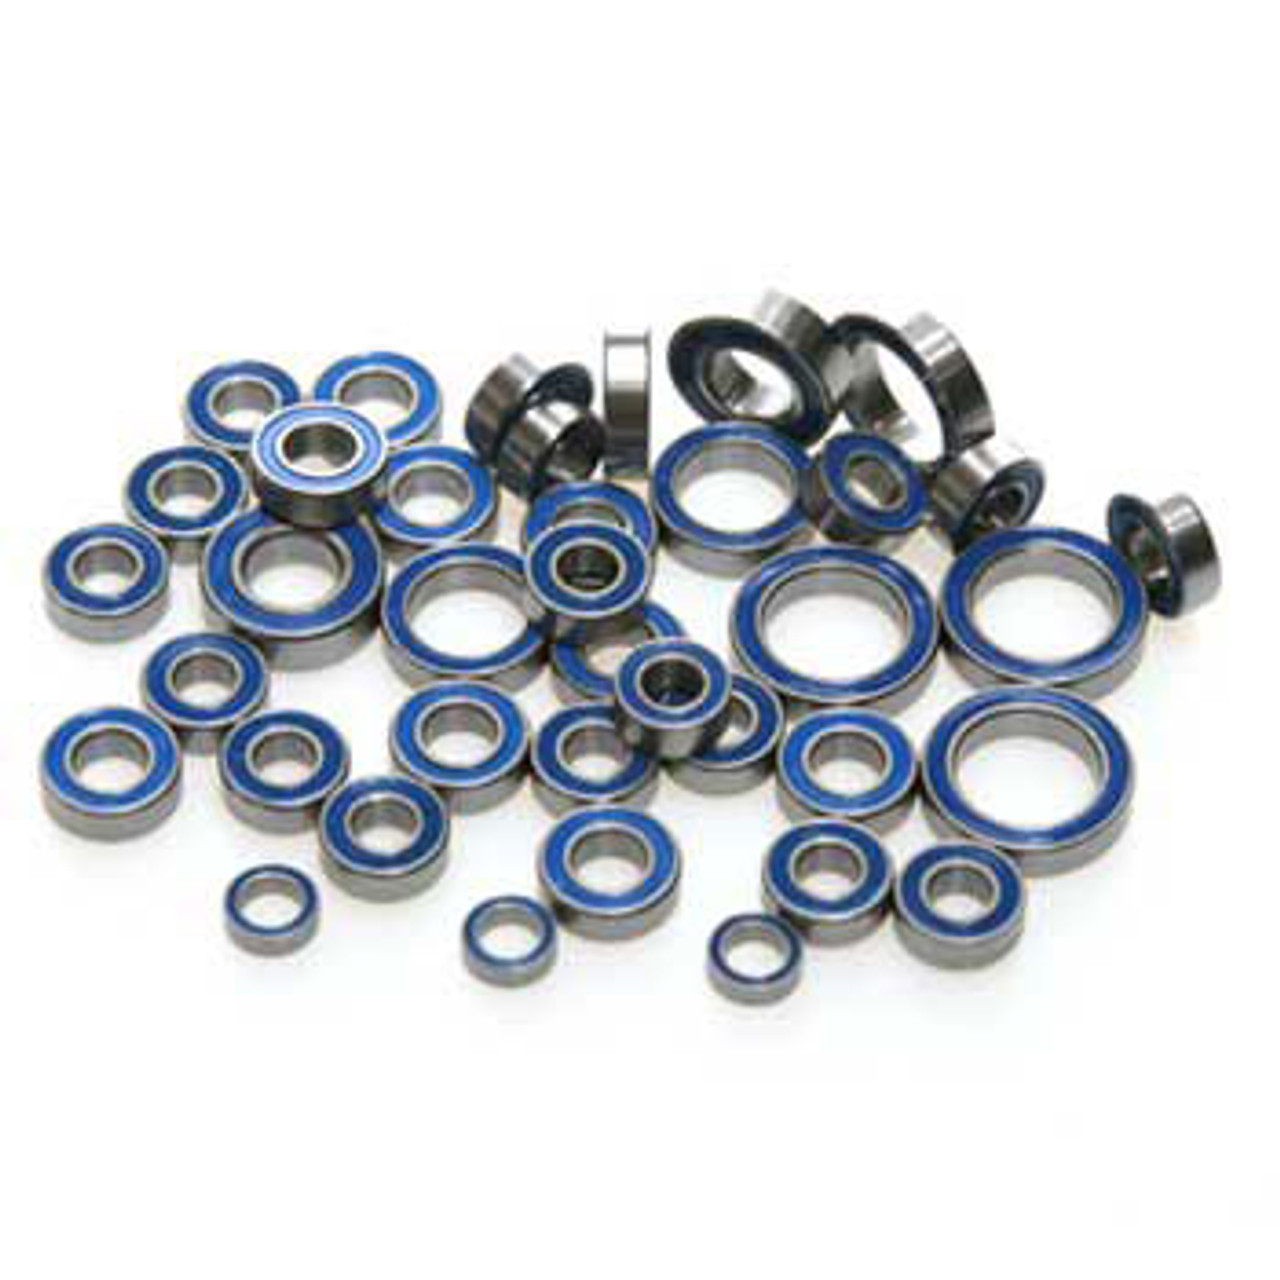 Traxxas Revo 3.3 & Platinum complete replacement bearing kit.  Contains every bearing in the truck!